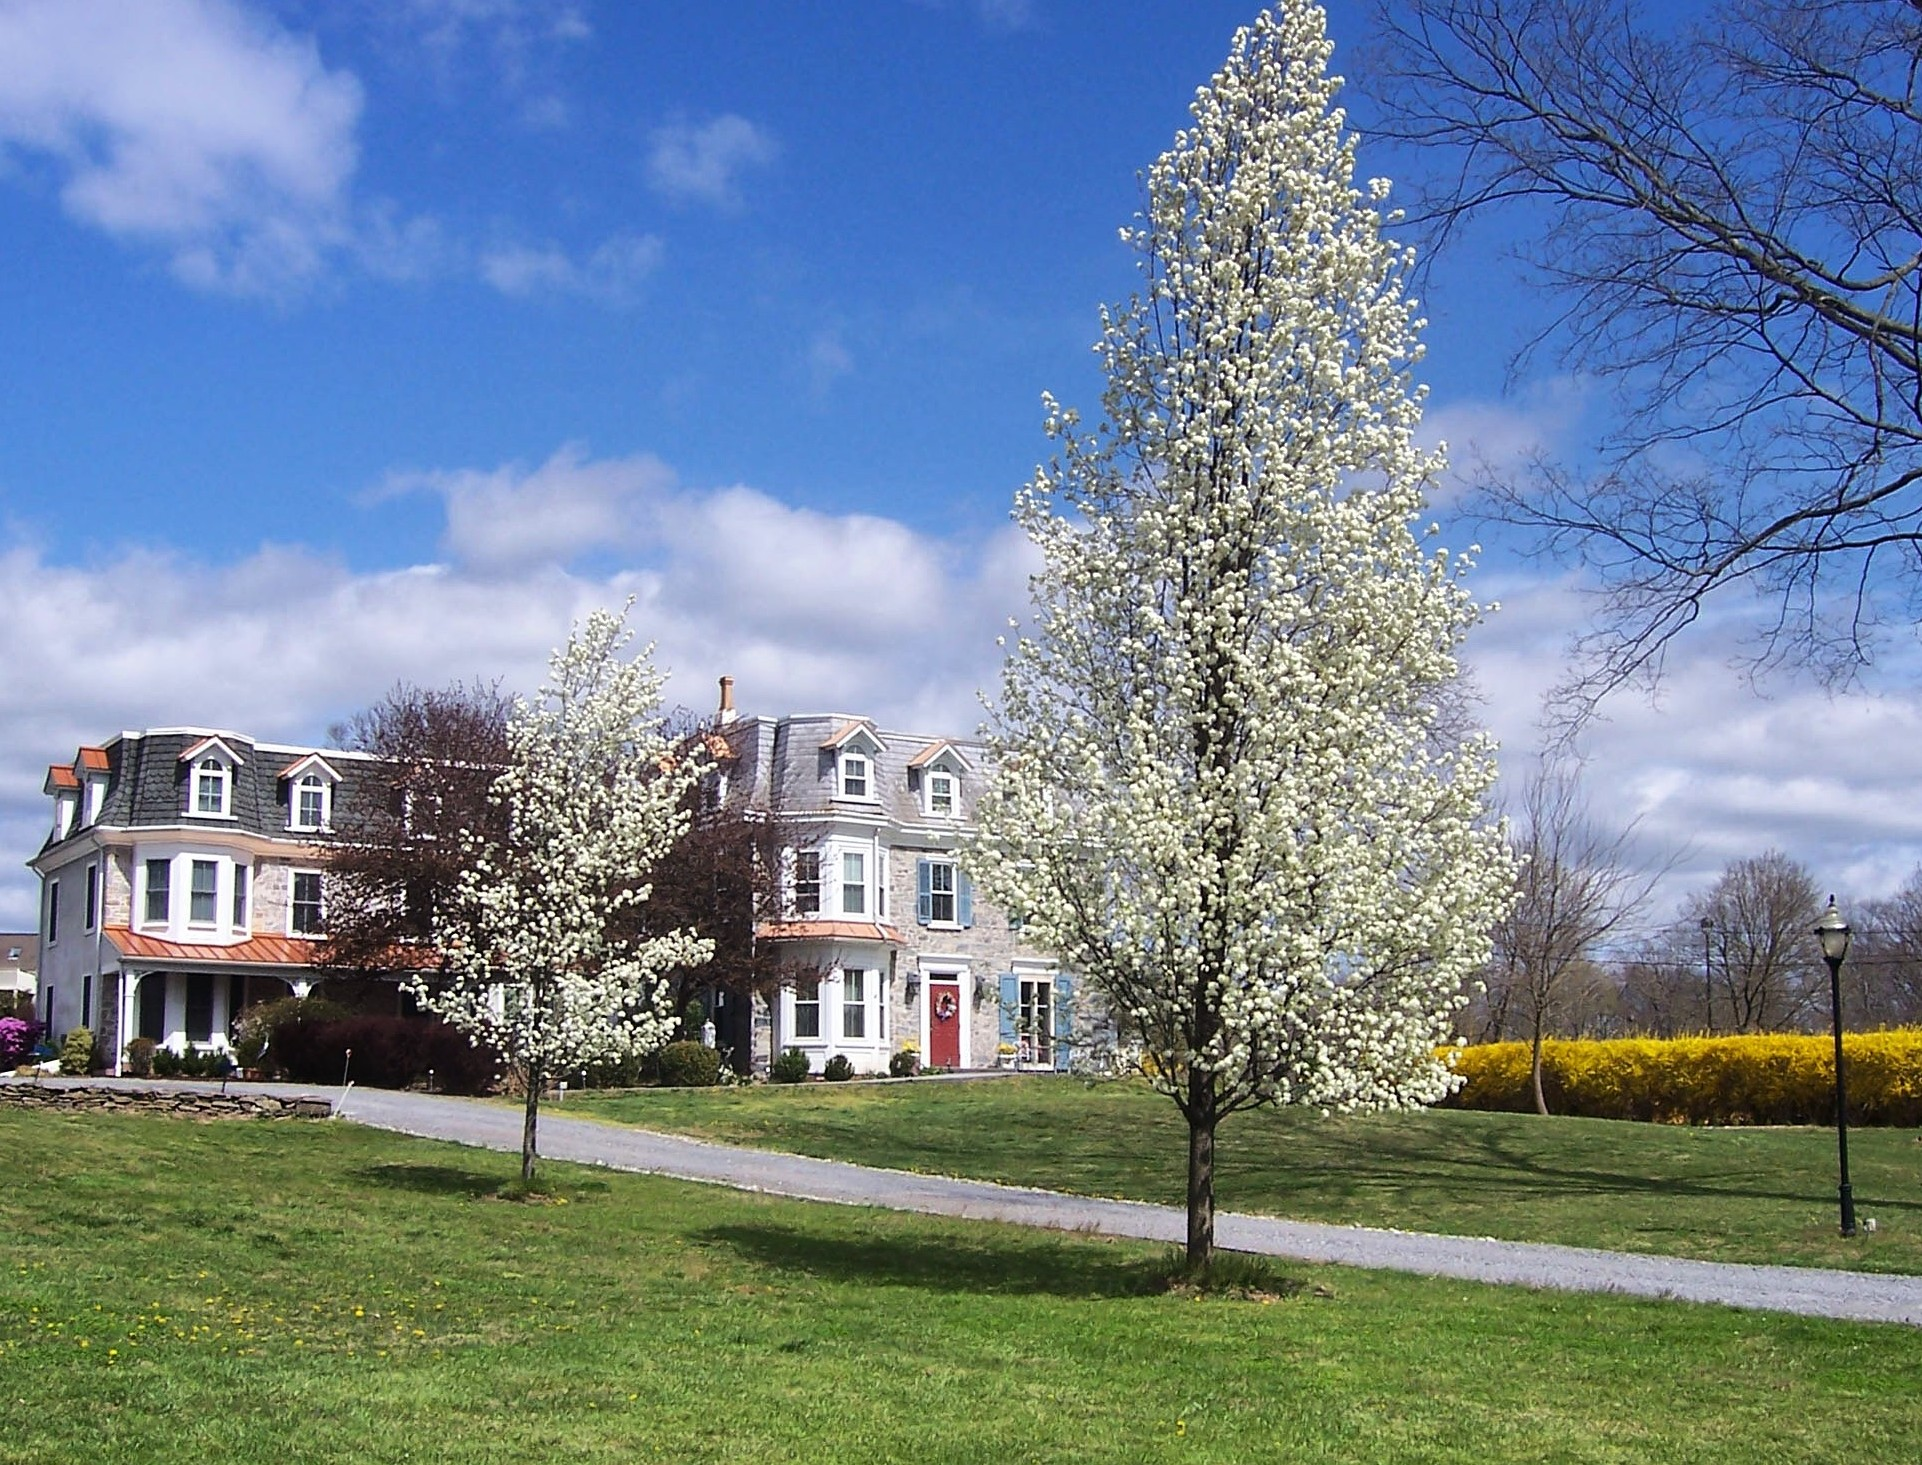 long view of house with white spring trees and blue sky with one white fluffy cloud